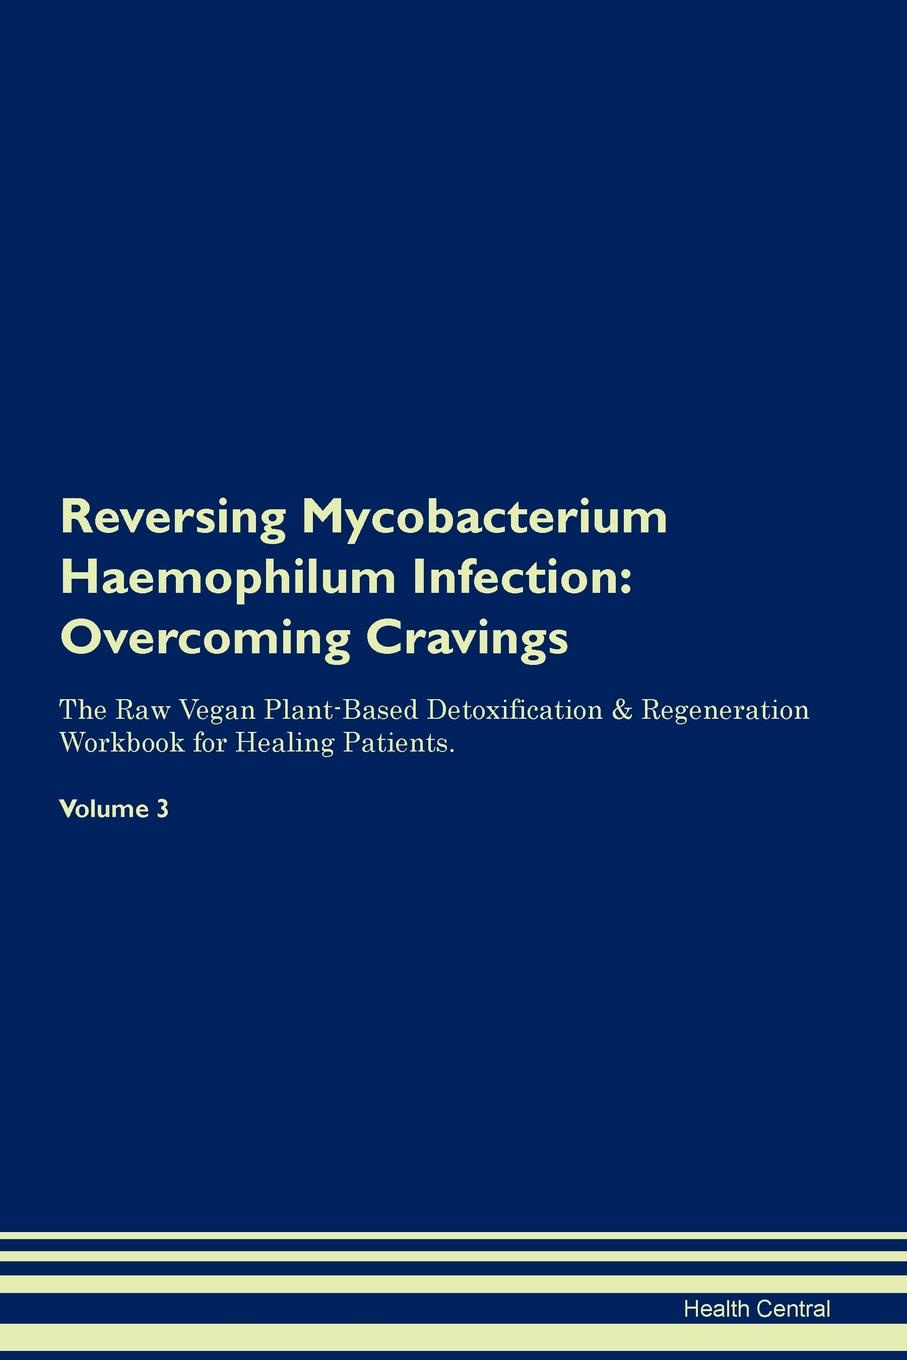 Health Central Reversing Mycobacterium Haemophilum Infection. Overcoming Cravings The Raw Vegan Plant-Based Detoxification . Regeneration Workbook for Healing Patients. Volume 3 mycobacterium abscessus